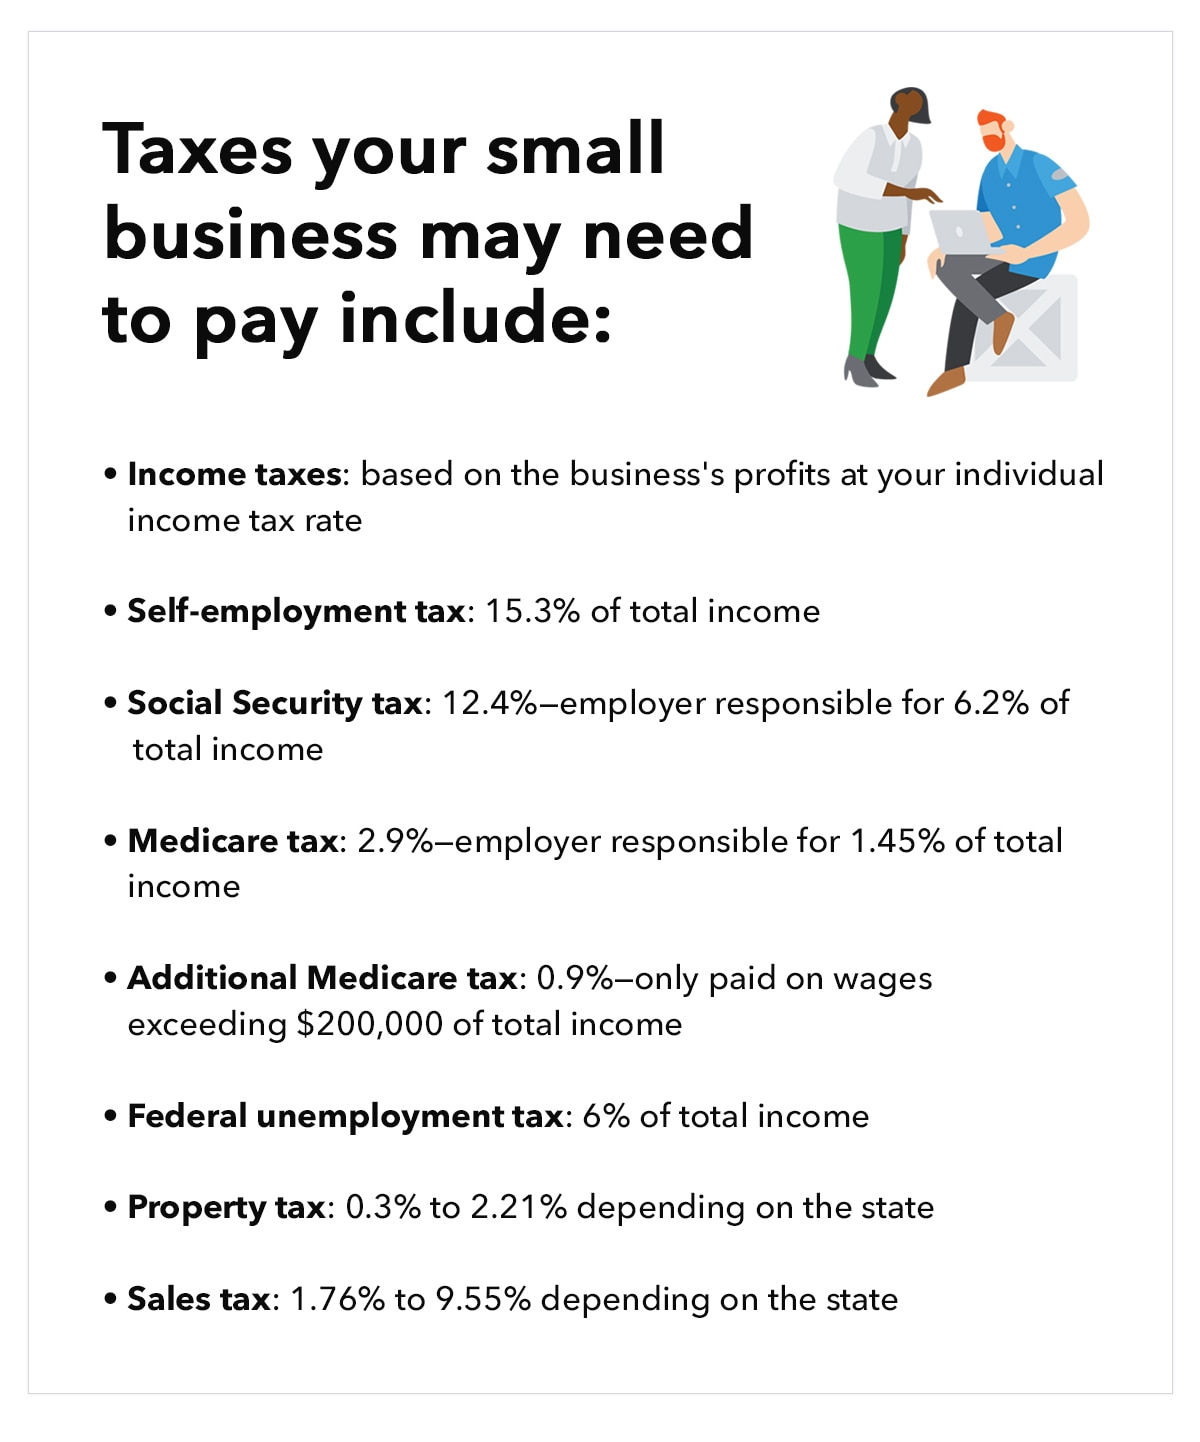 Taxes your small business may need to pay include: Income taxes: based on the business's profits at your individual income tax rate Self-employment tax: 15.3% of total income Social Security tax: 12.4%--employer responsible for 6.2% of total income Medicare tax: 2.9%--employer responsible for 1.45% of total income Additional Medicare tax: 0.9%--only paid on wages exceeding $200,000 of total income Federal unemployment tax: 6% of total income Property tax: 0.3% to 2.21% depending on the state Sales tax: 1.76% to 9.55% depending on the state